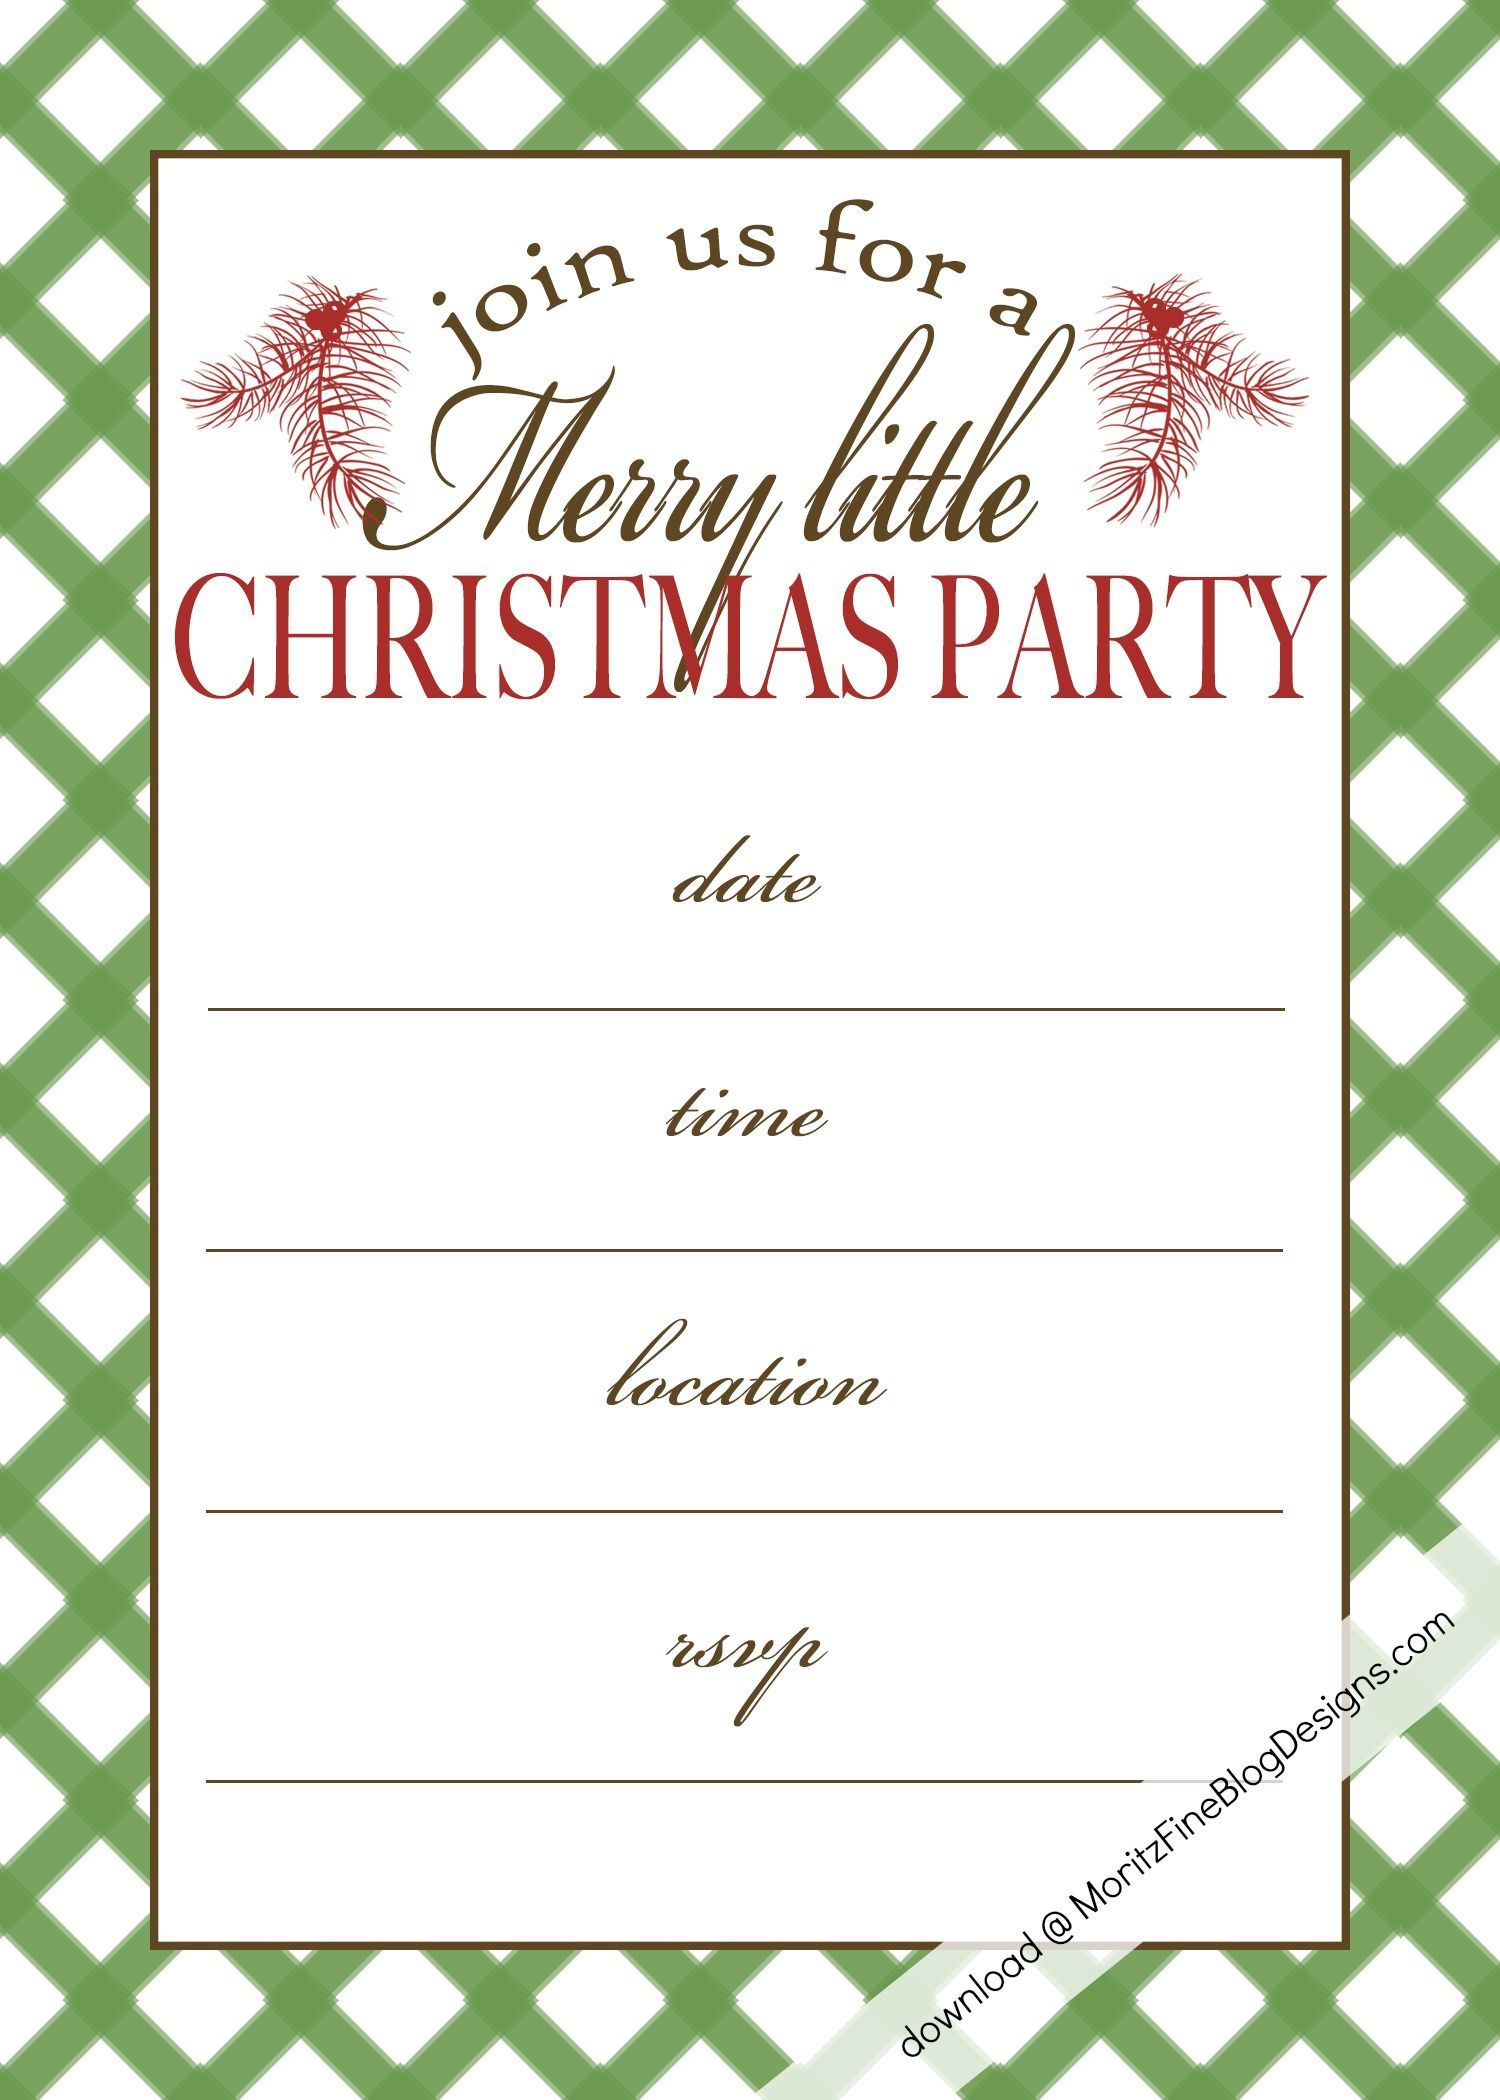 002 Imposing Christma Party Invite Template Free Download High Def  Funny Invitation HolidayFull